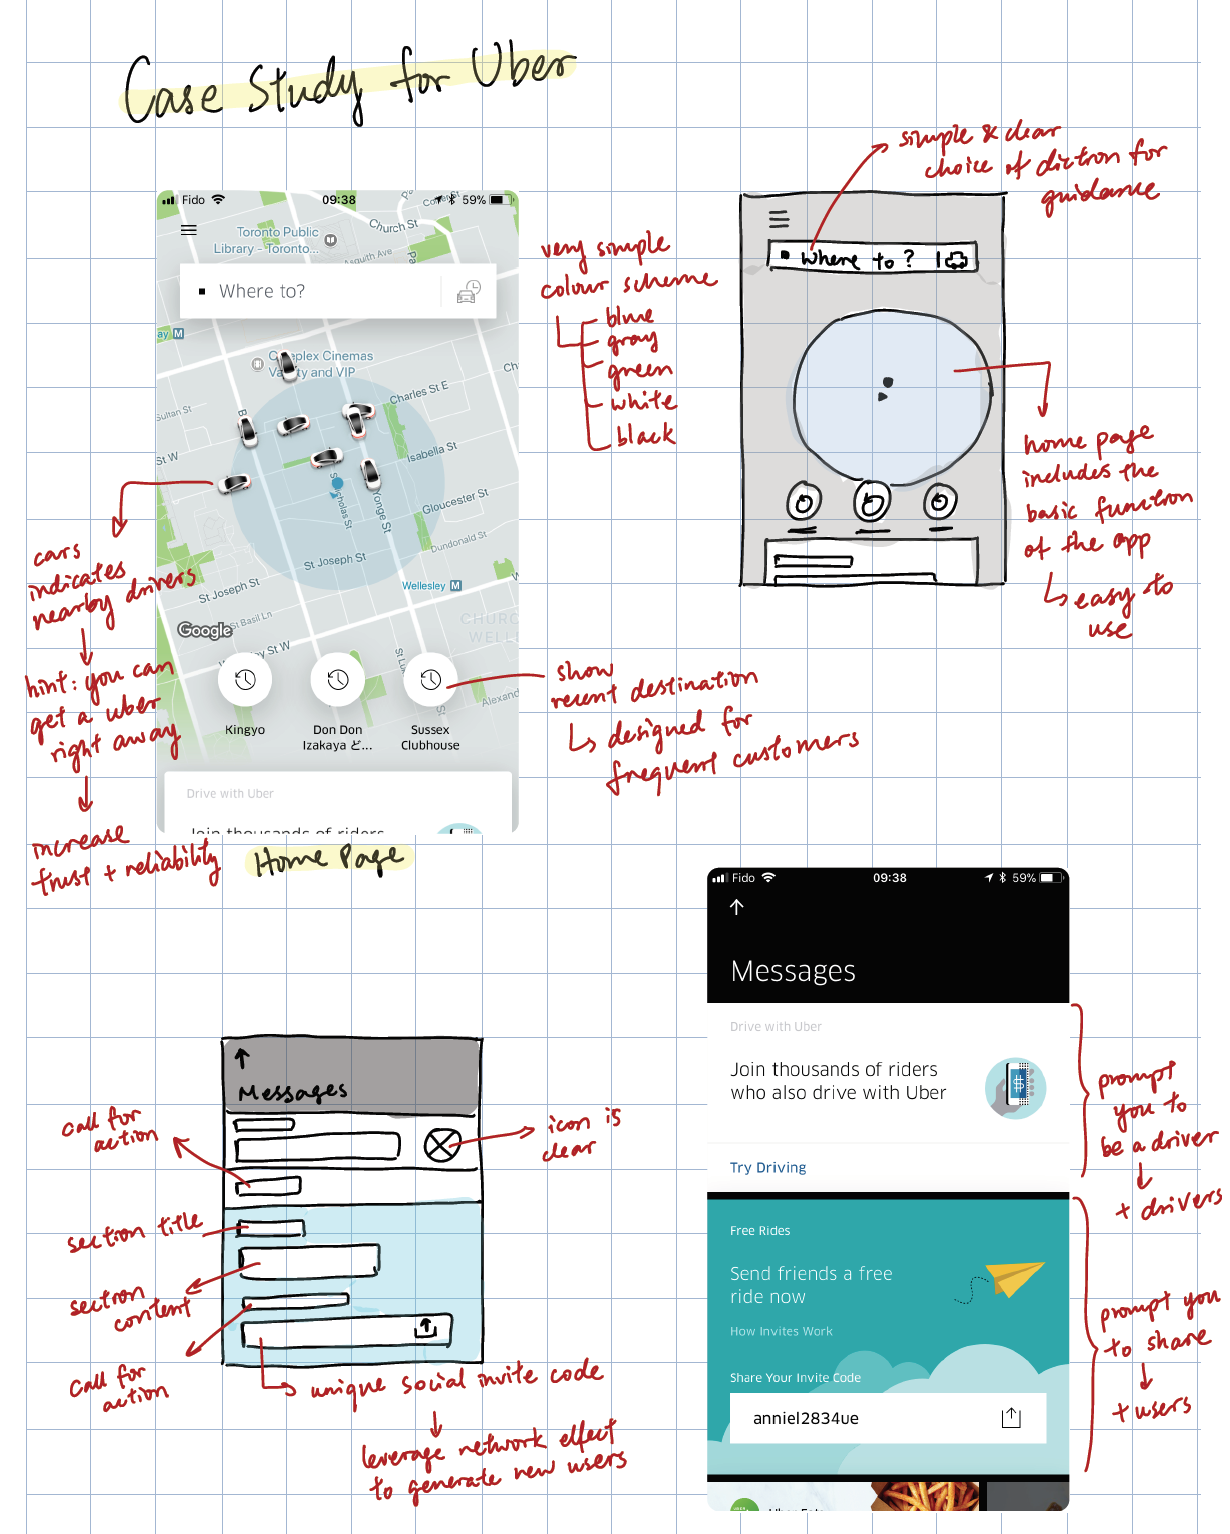 Ux Case Study Uber Infographic Uxness Ux Design Usability Articles Course Books Events